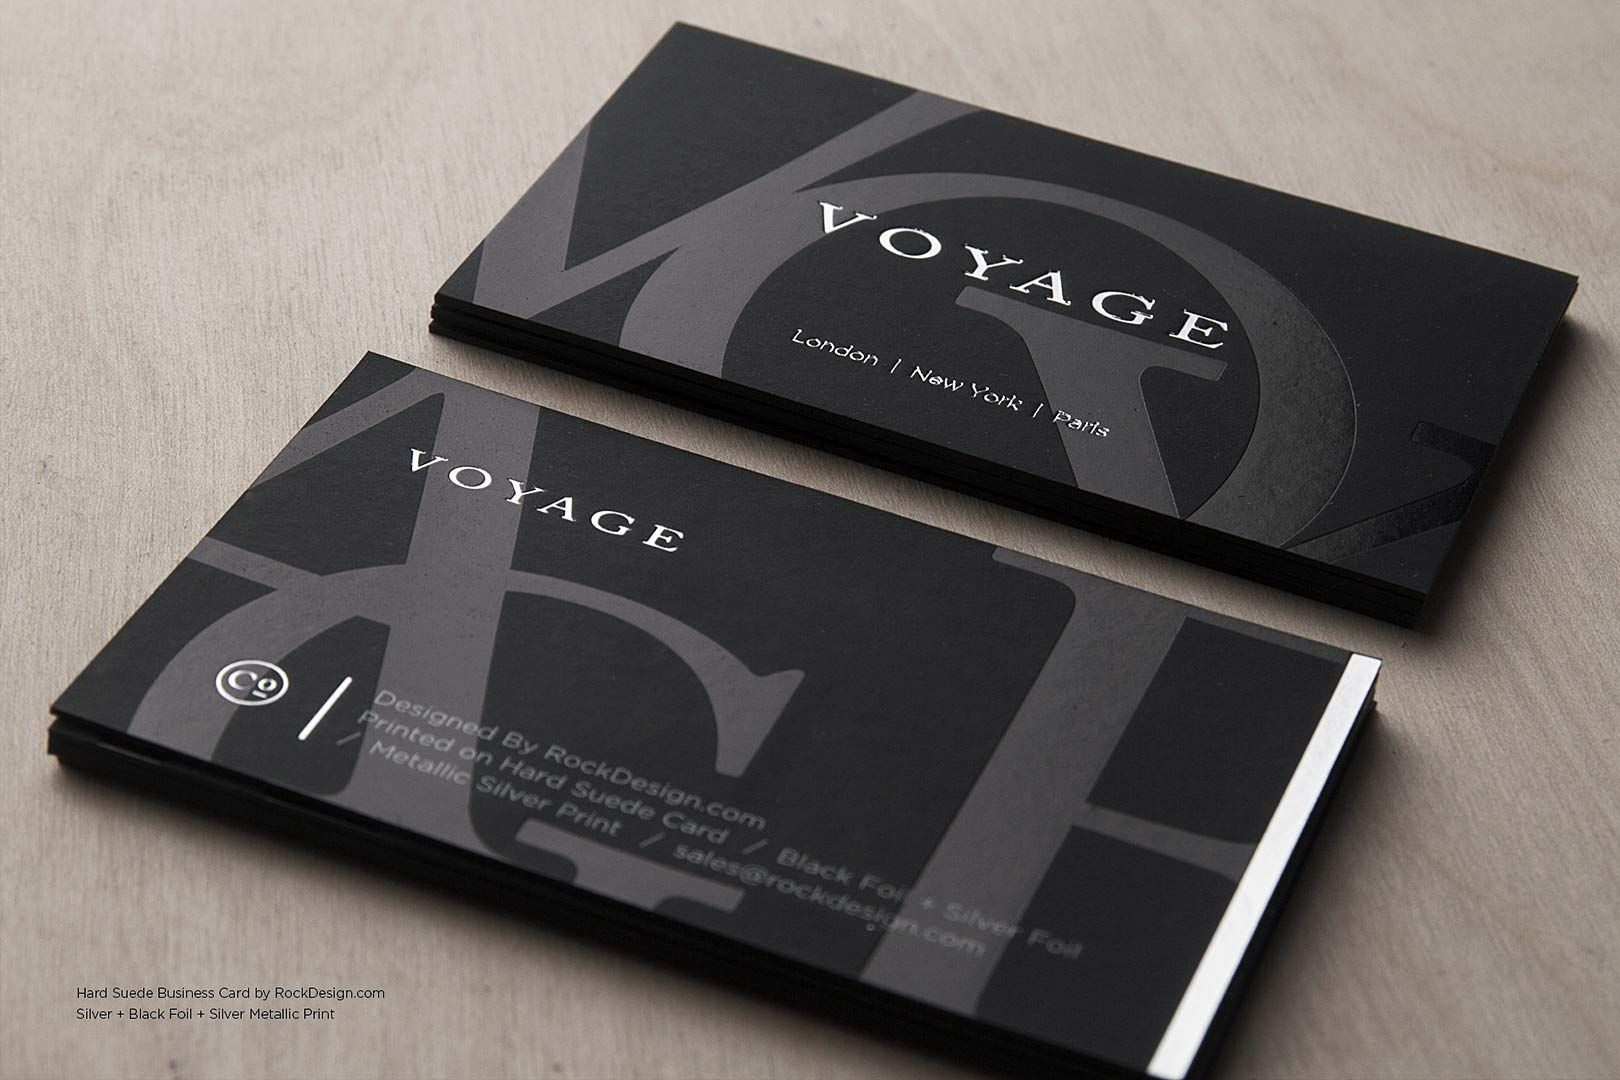 Hard Suede Business Card Design 10 | นามบัตร | Pinterest | Business ...